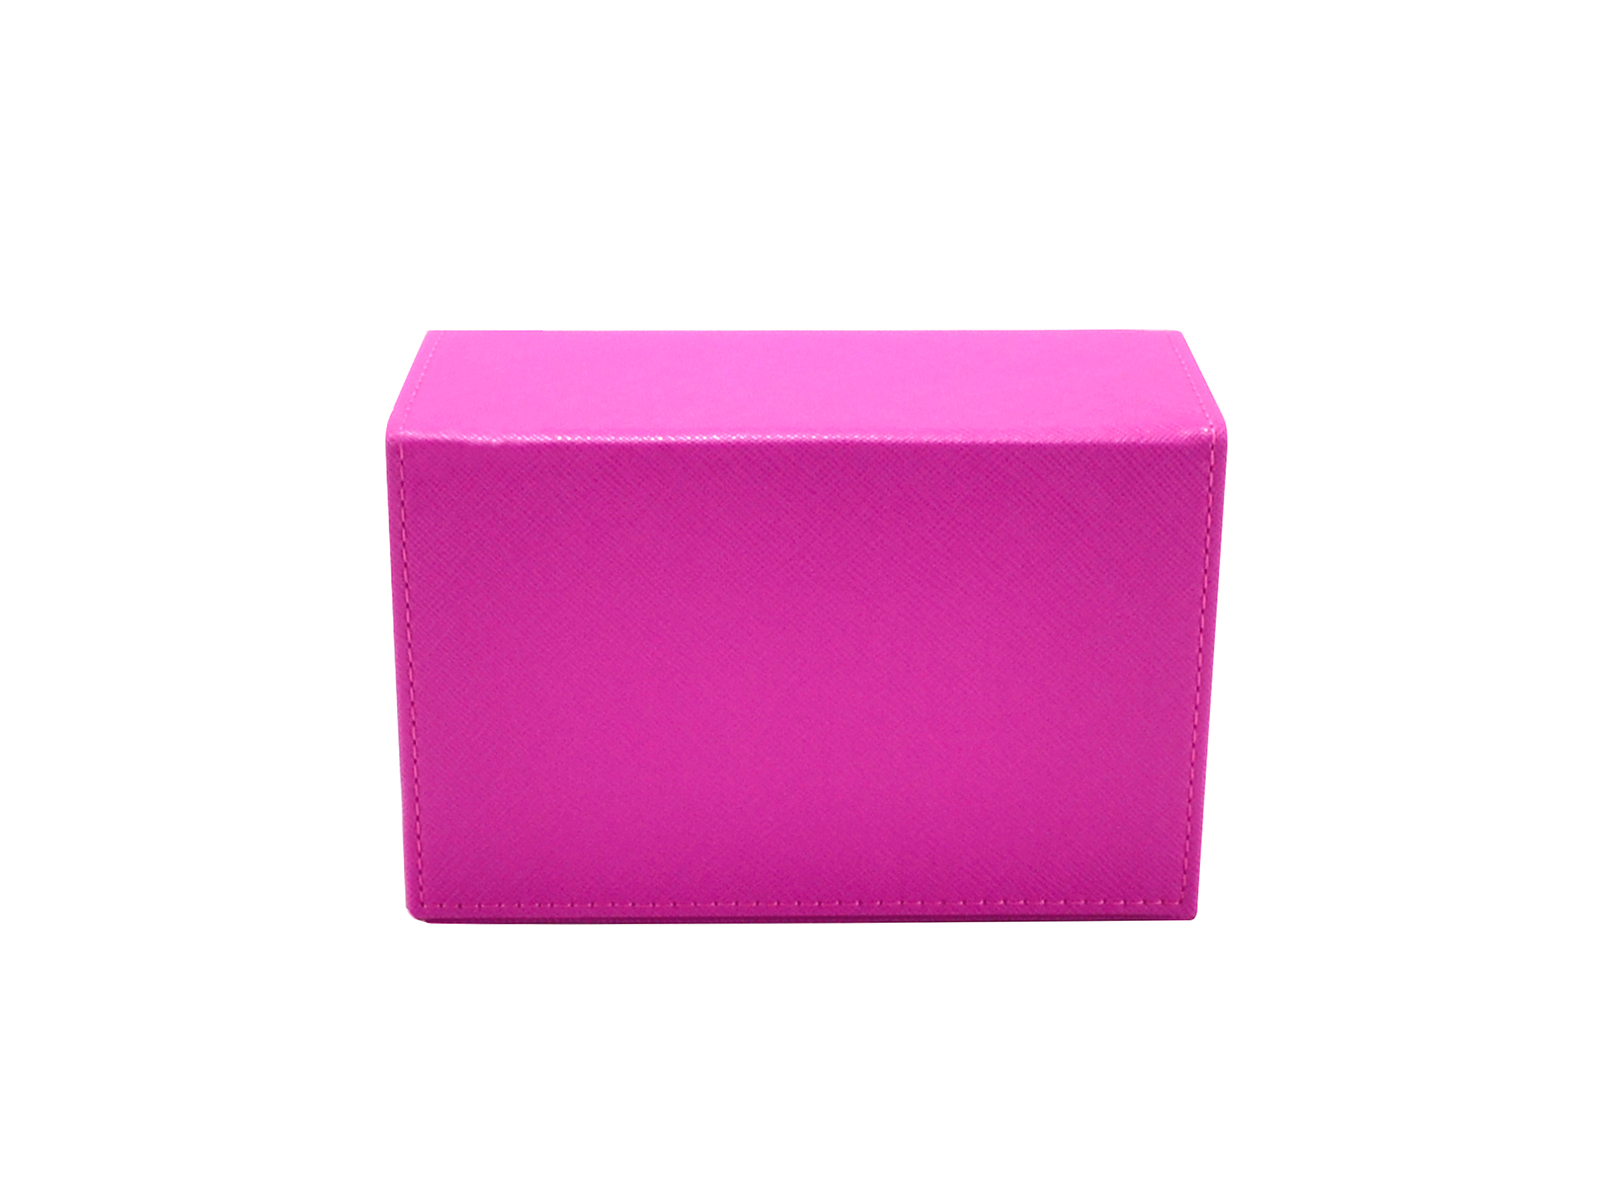 Dex Protection - The Dualist Deckbox -  Pink